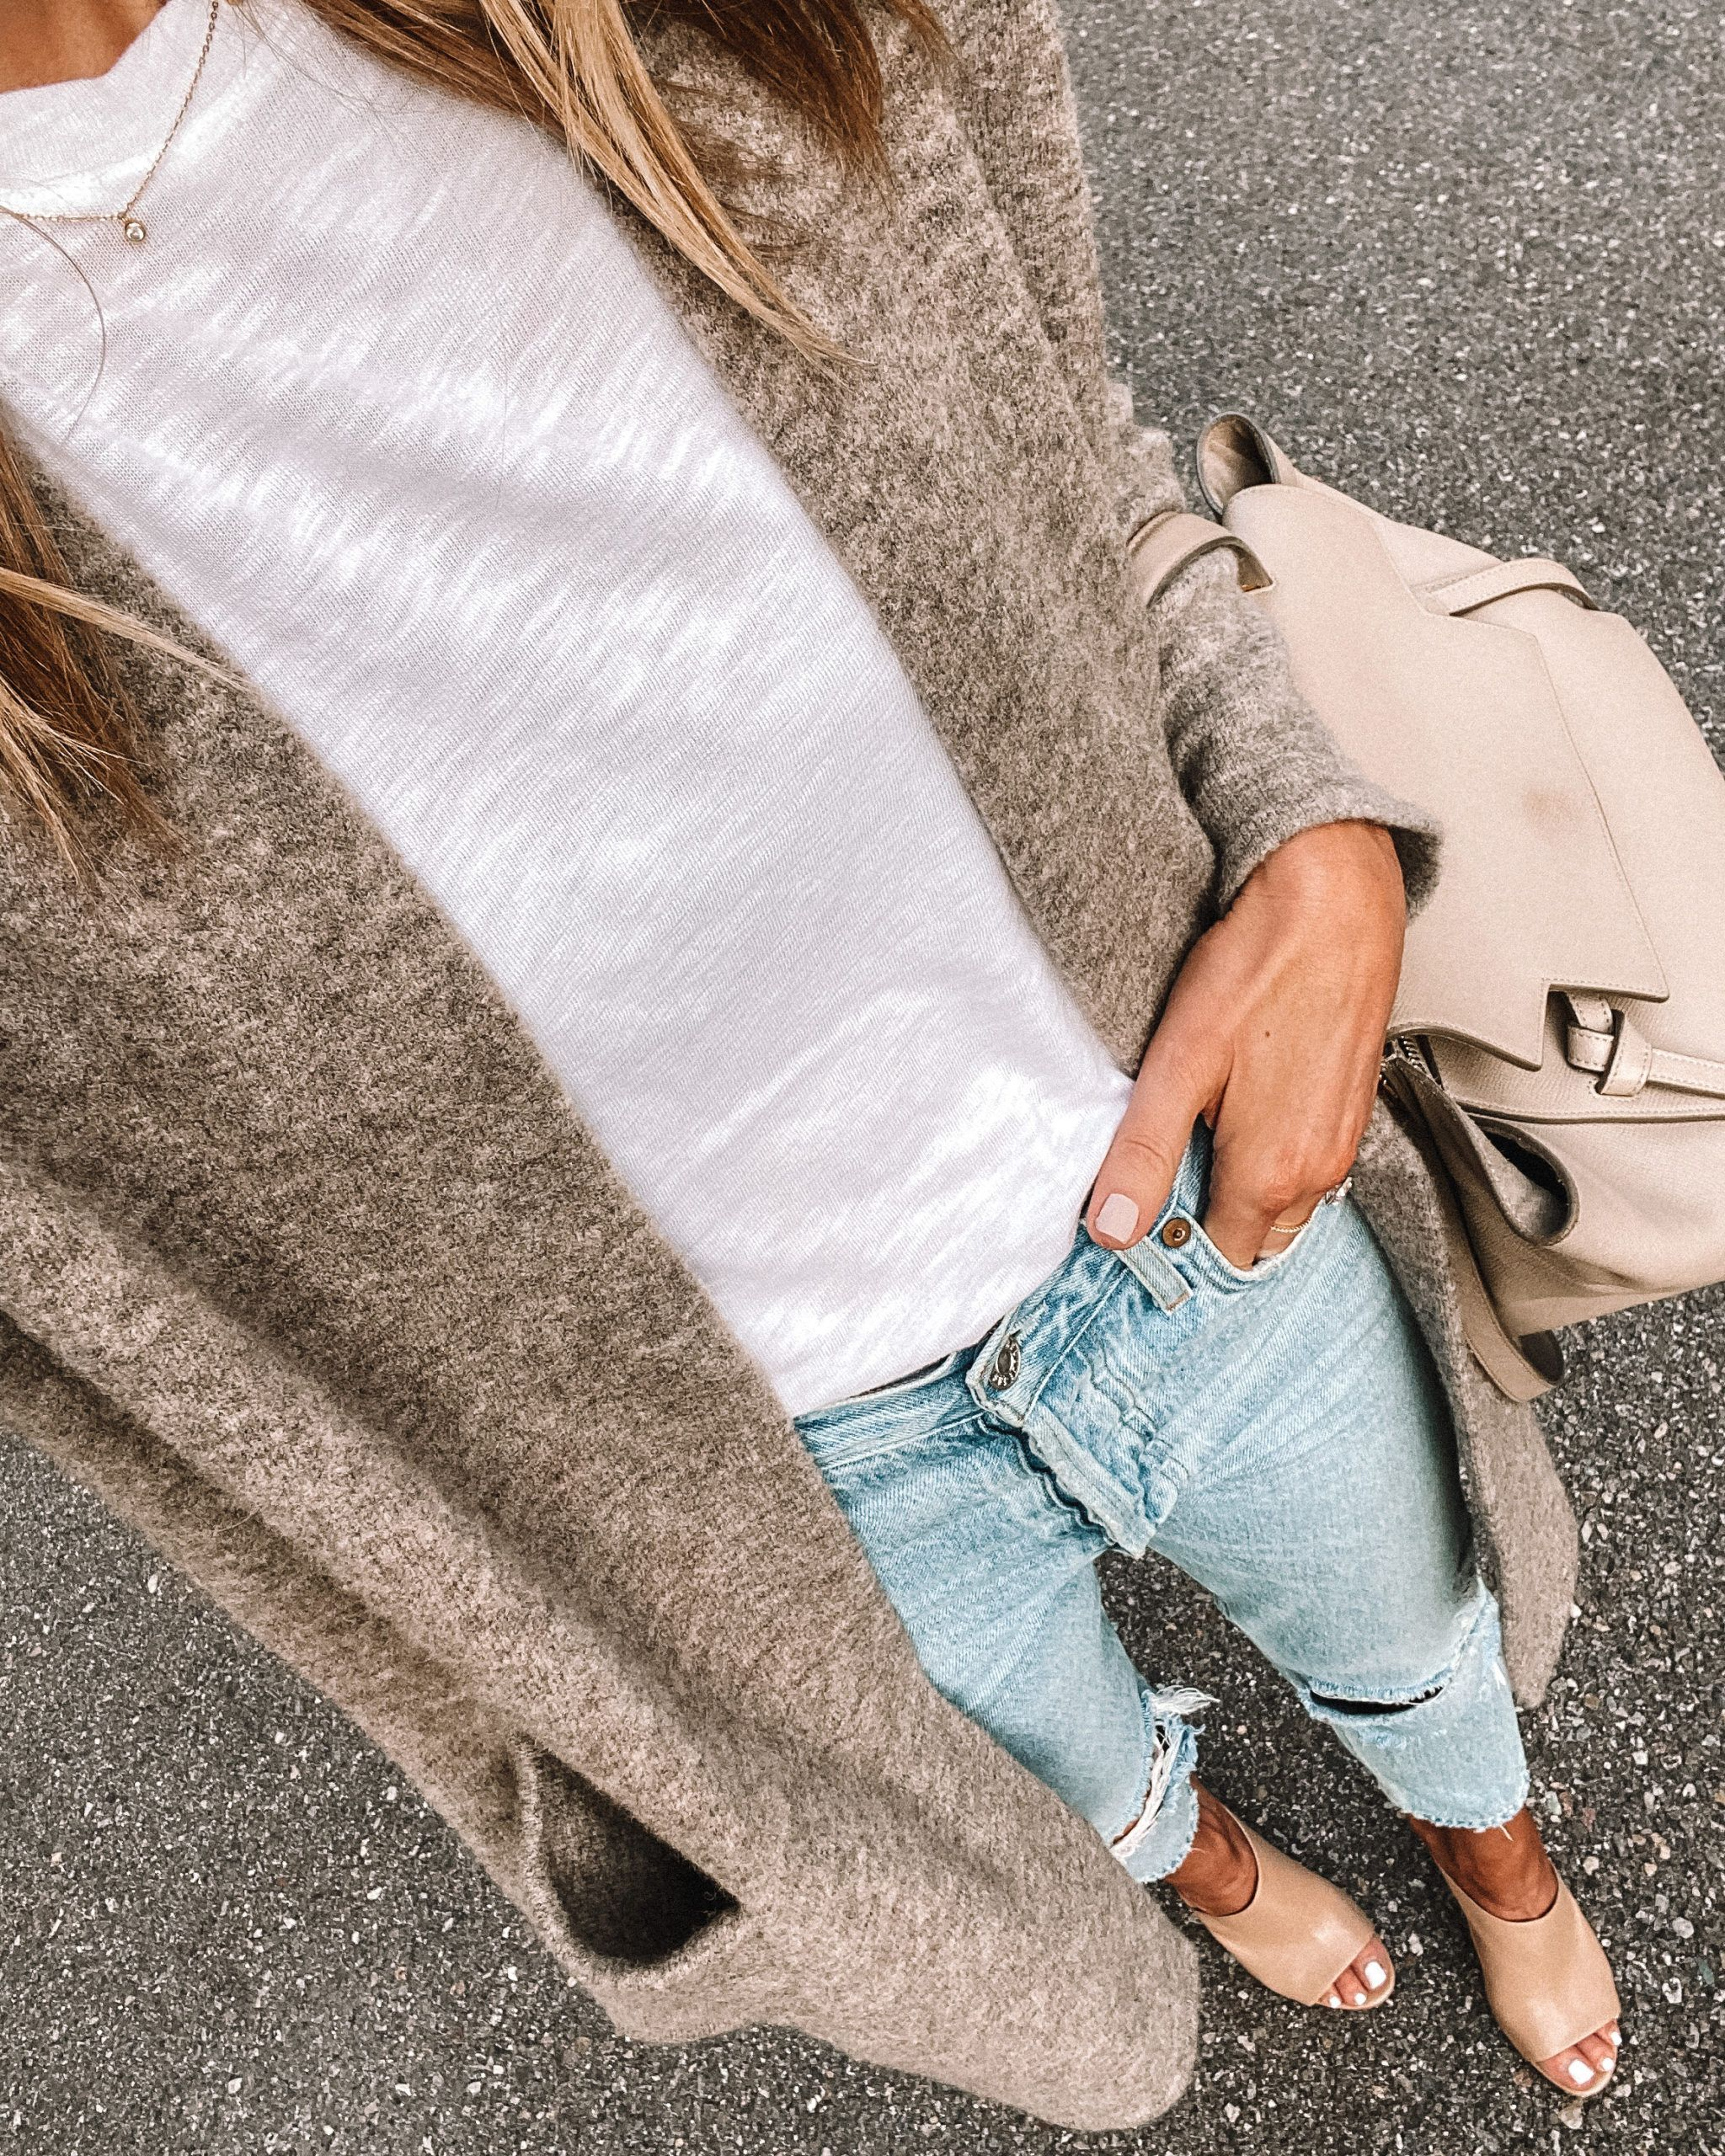 20 Stylish Fall Outfit Ideas | Fall & Autumn Outfit Inspiration | Fashion Jackson